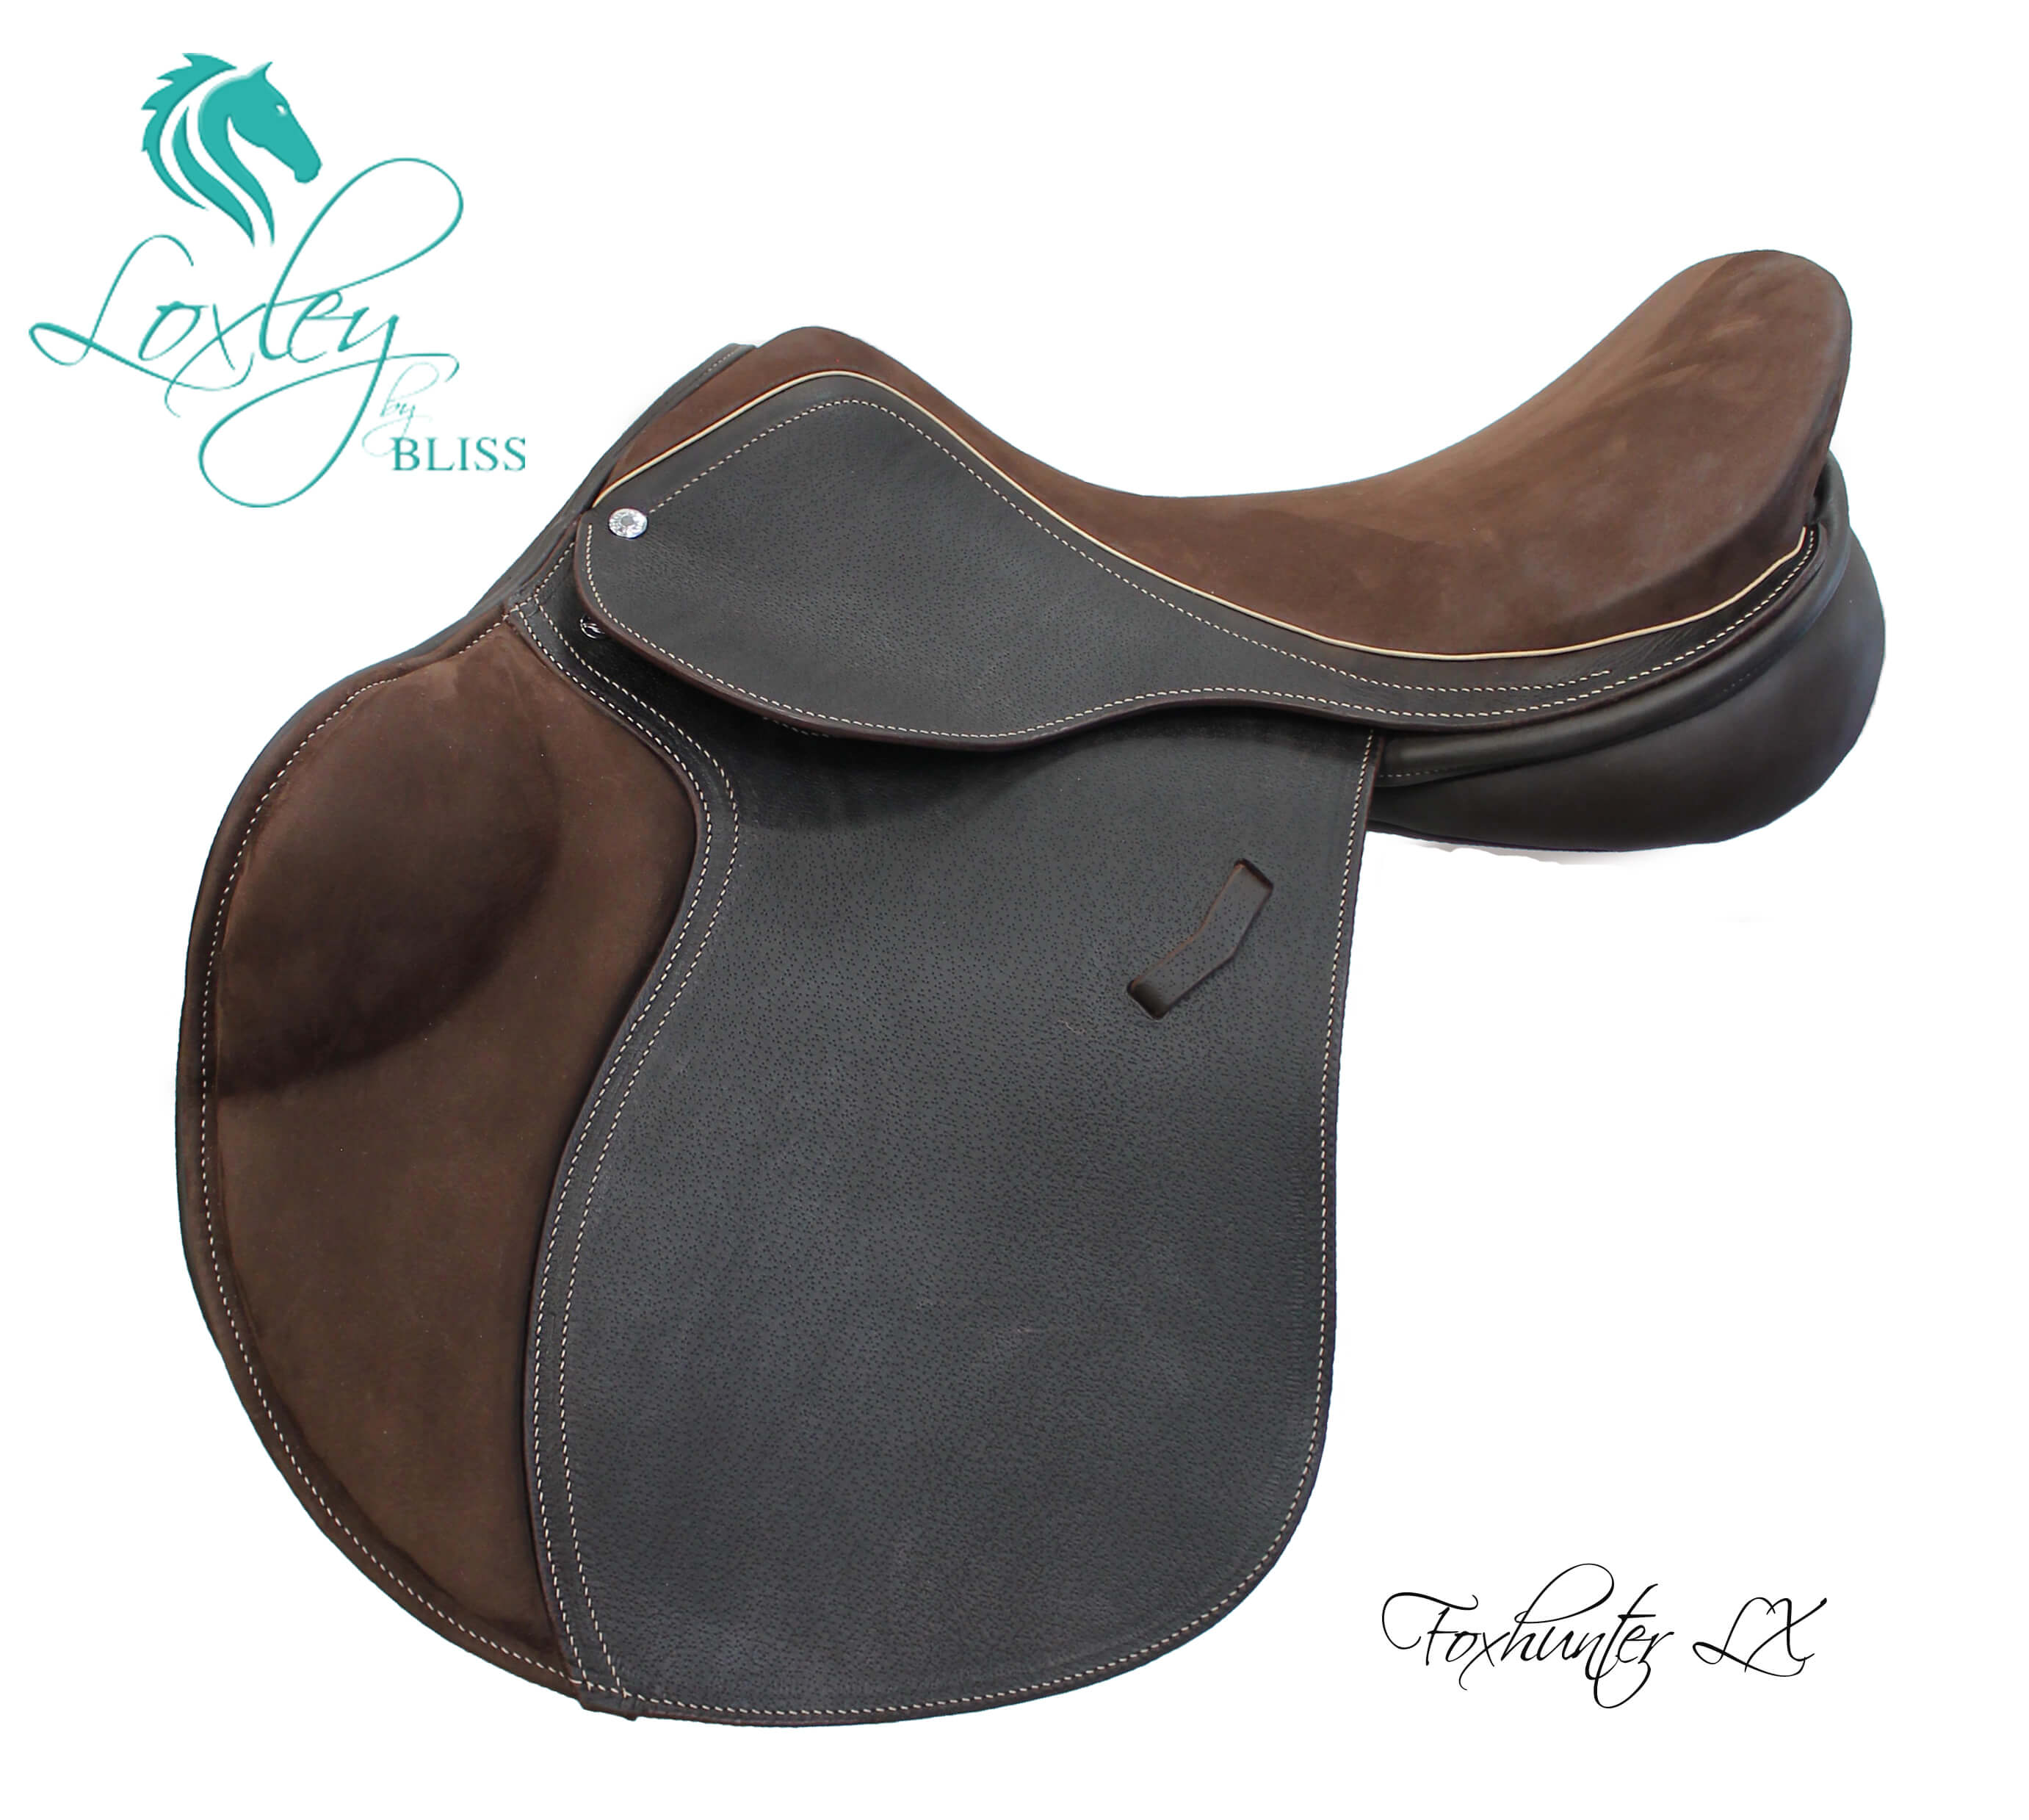 4 18289 Loxley Saddle Image Template